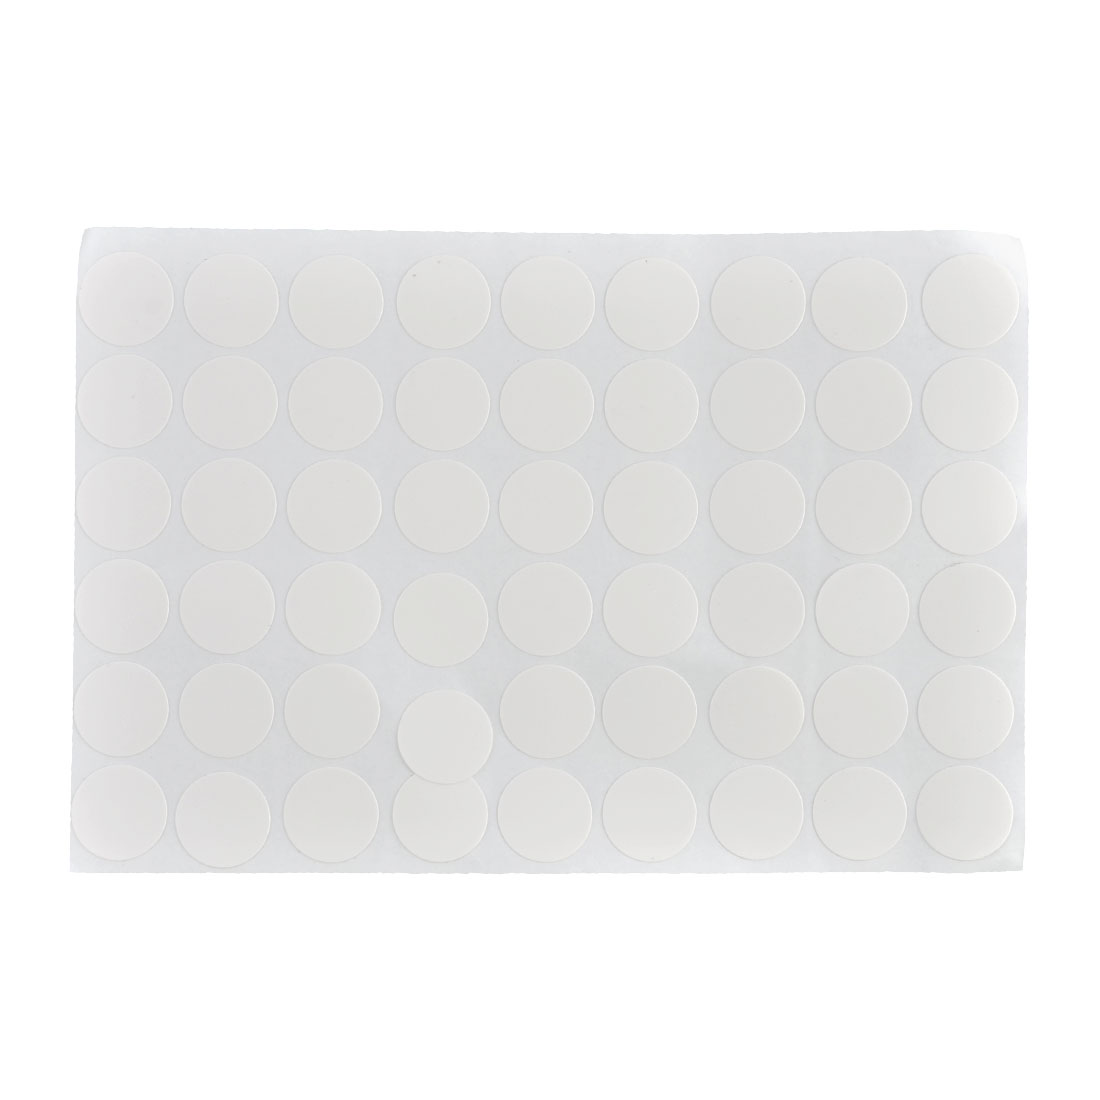 21mm Dia Furniture Plastic Self-adhesive Screw Hole Stickers Matte White 54 in 1